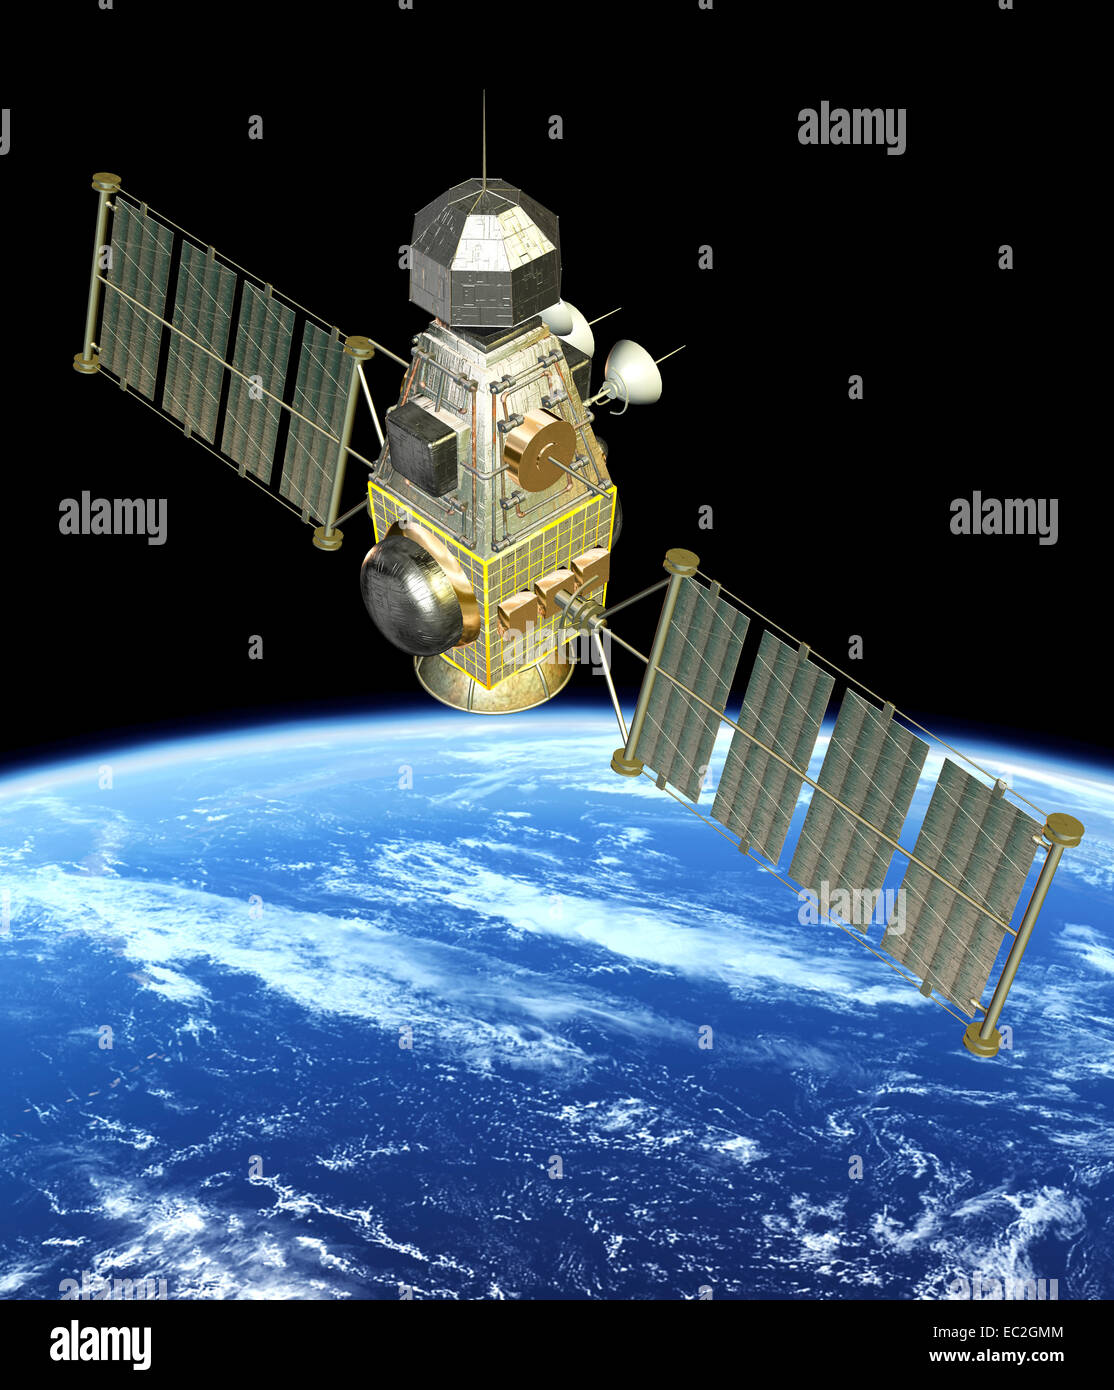 artist concept of space vehicle and earth - Stock Image